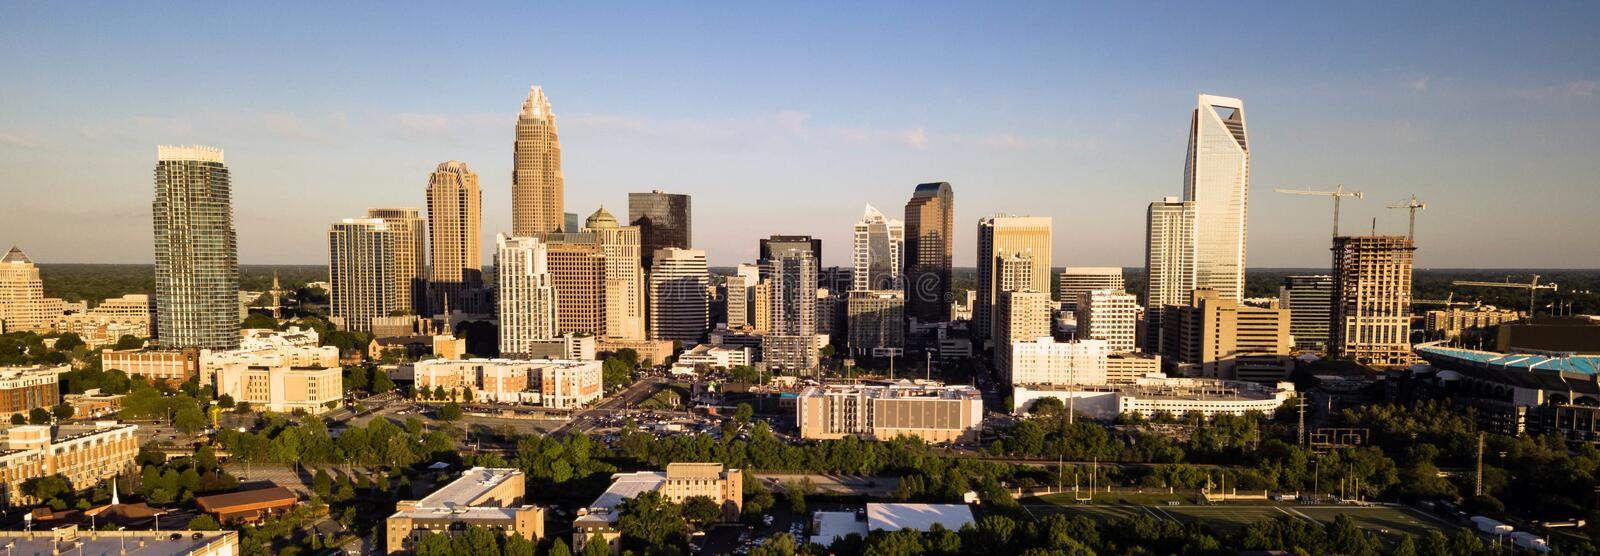 Aerial View of the Downtown City Skyline of Charlotte North Carolina stock photography